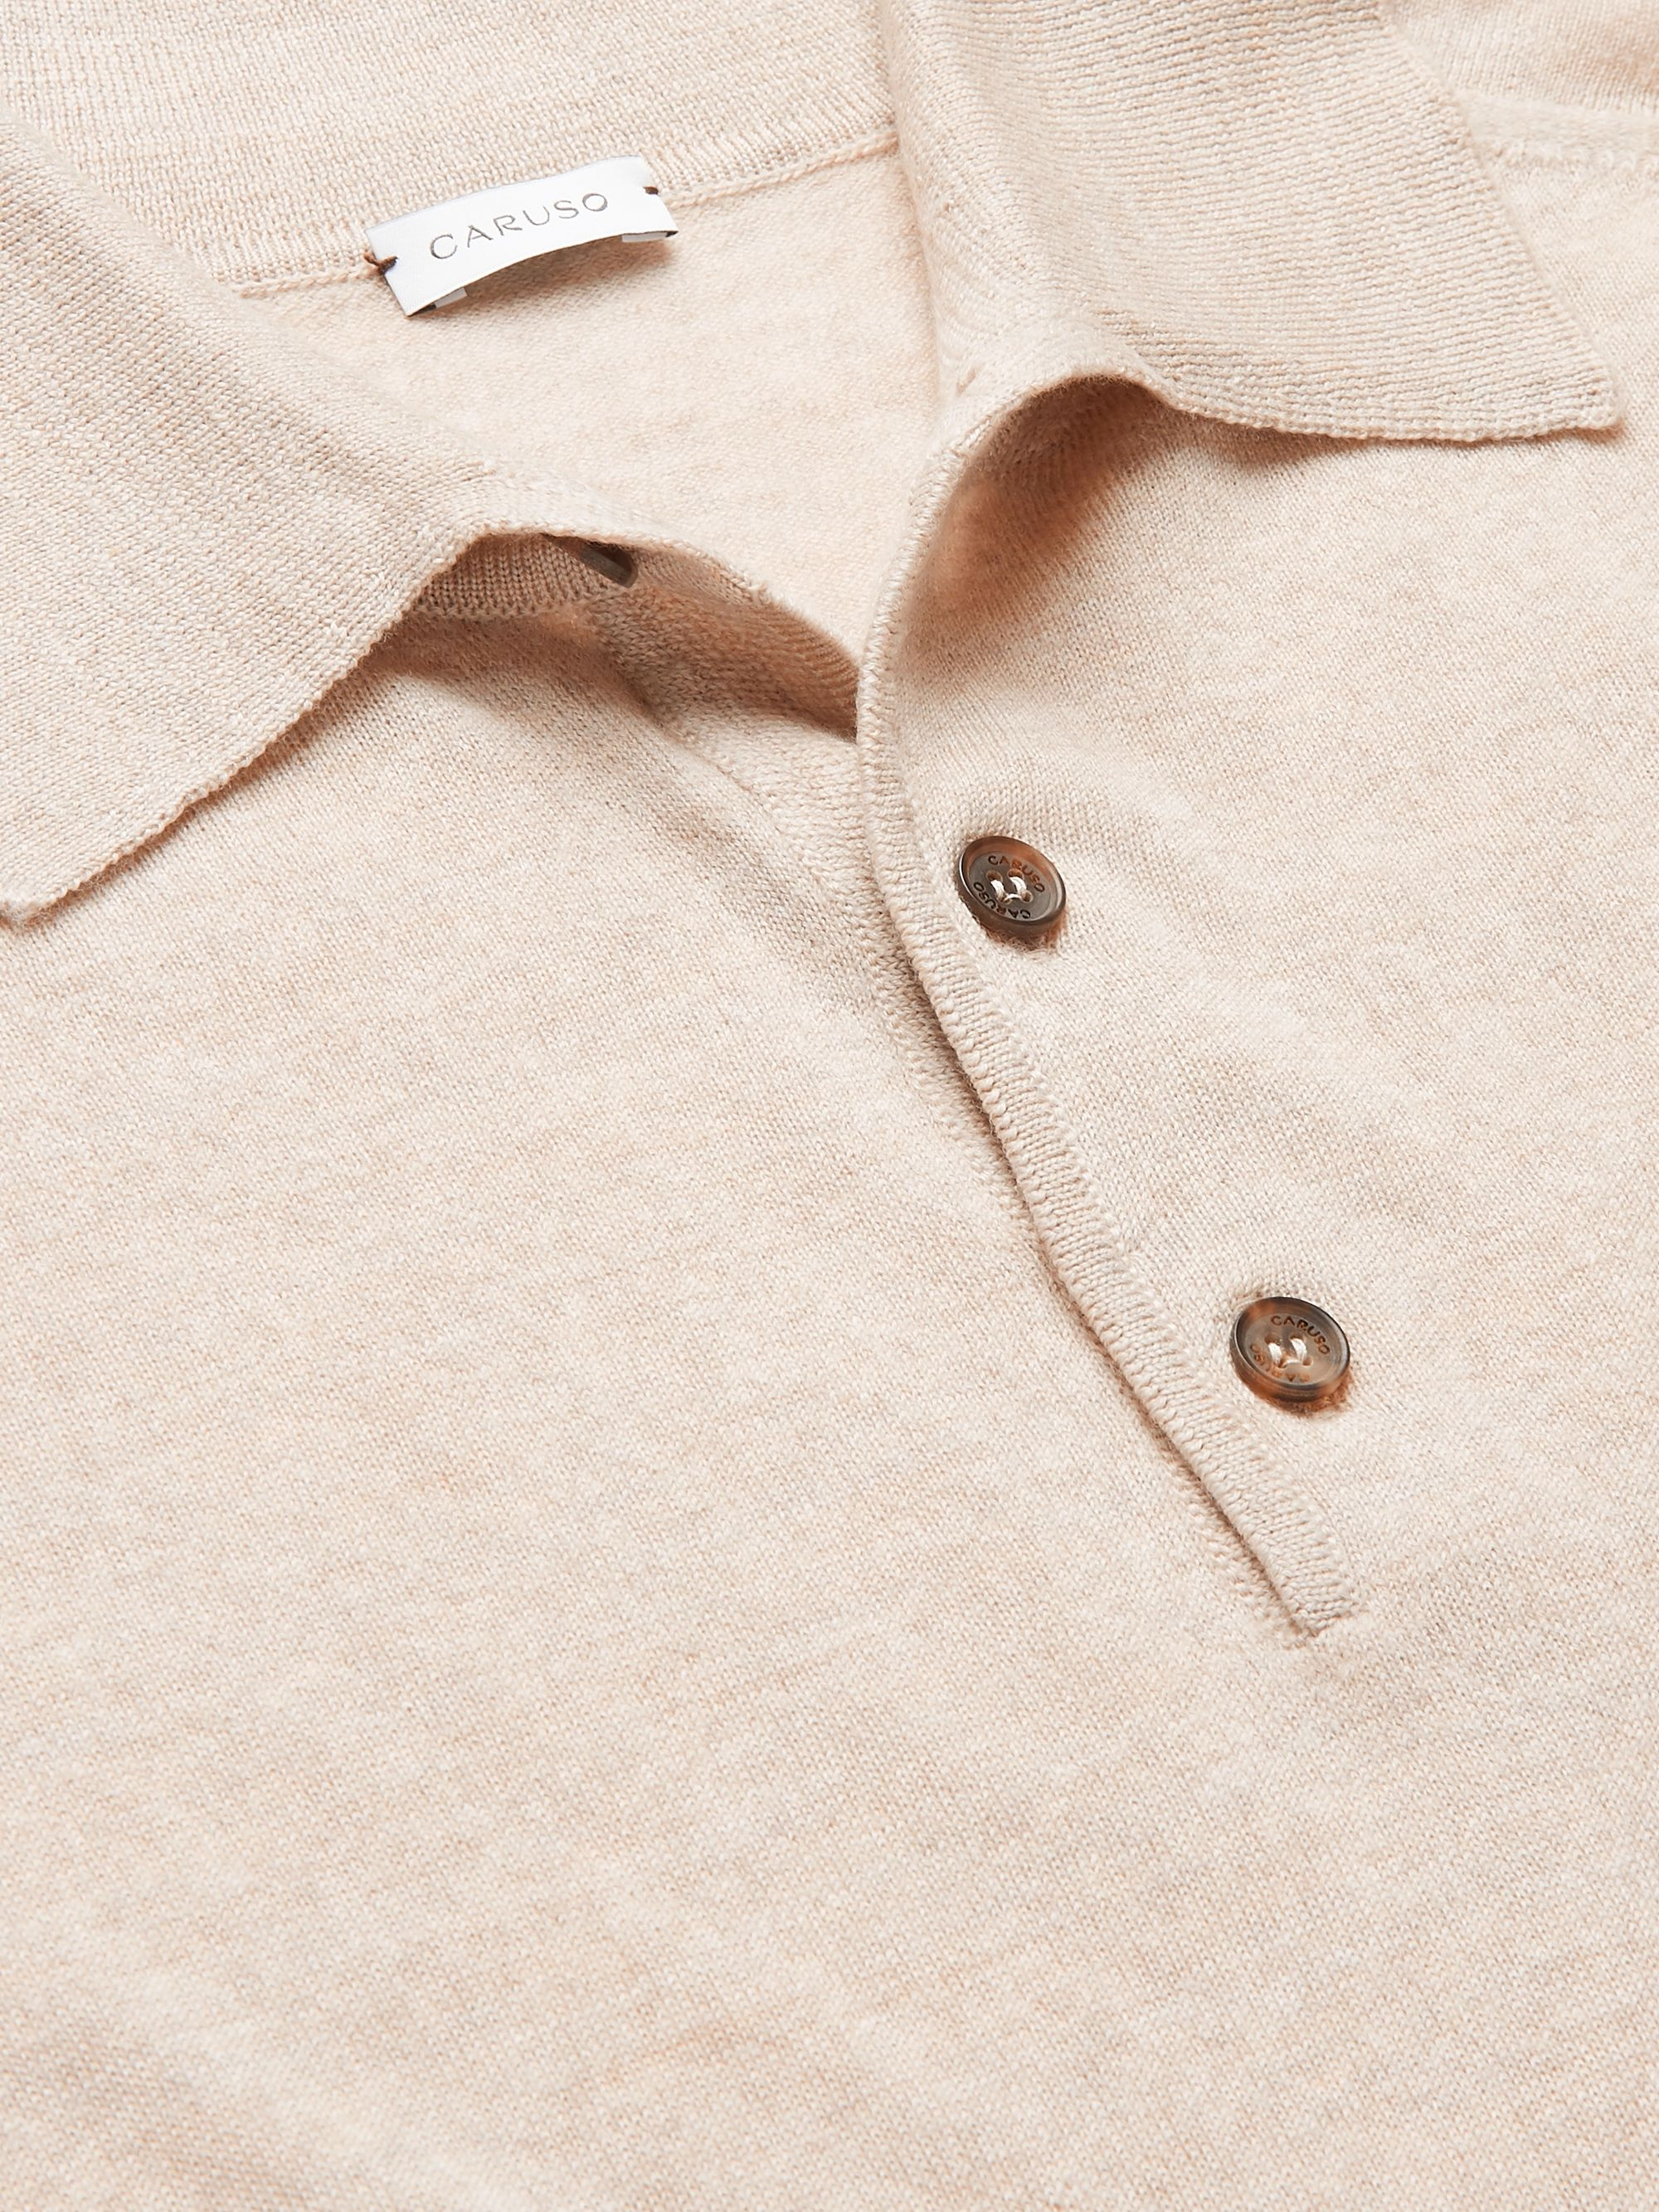 Beige Wool Polo Shirt | Caruso